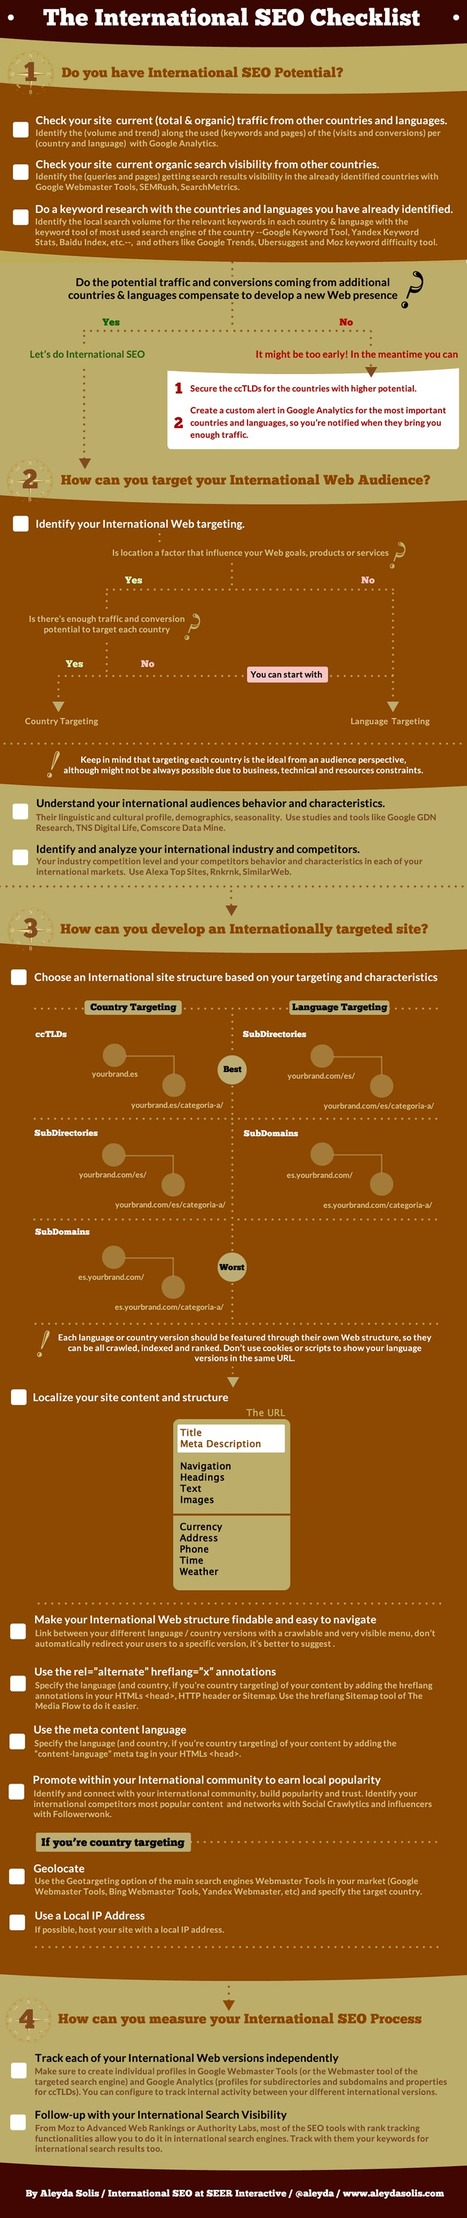 Infographie : le SEO international | SEO & Blogging | Scoop.it